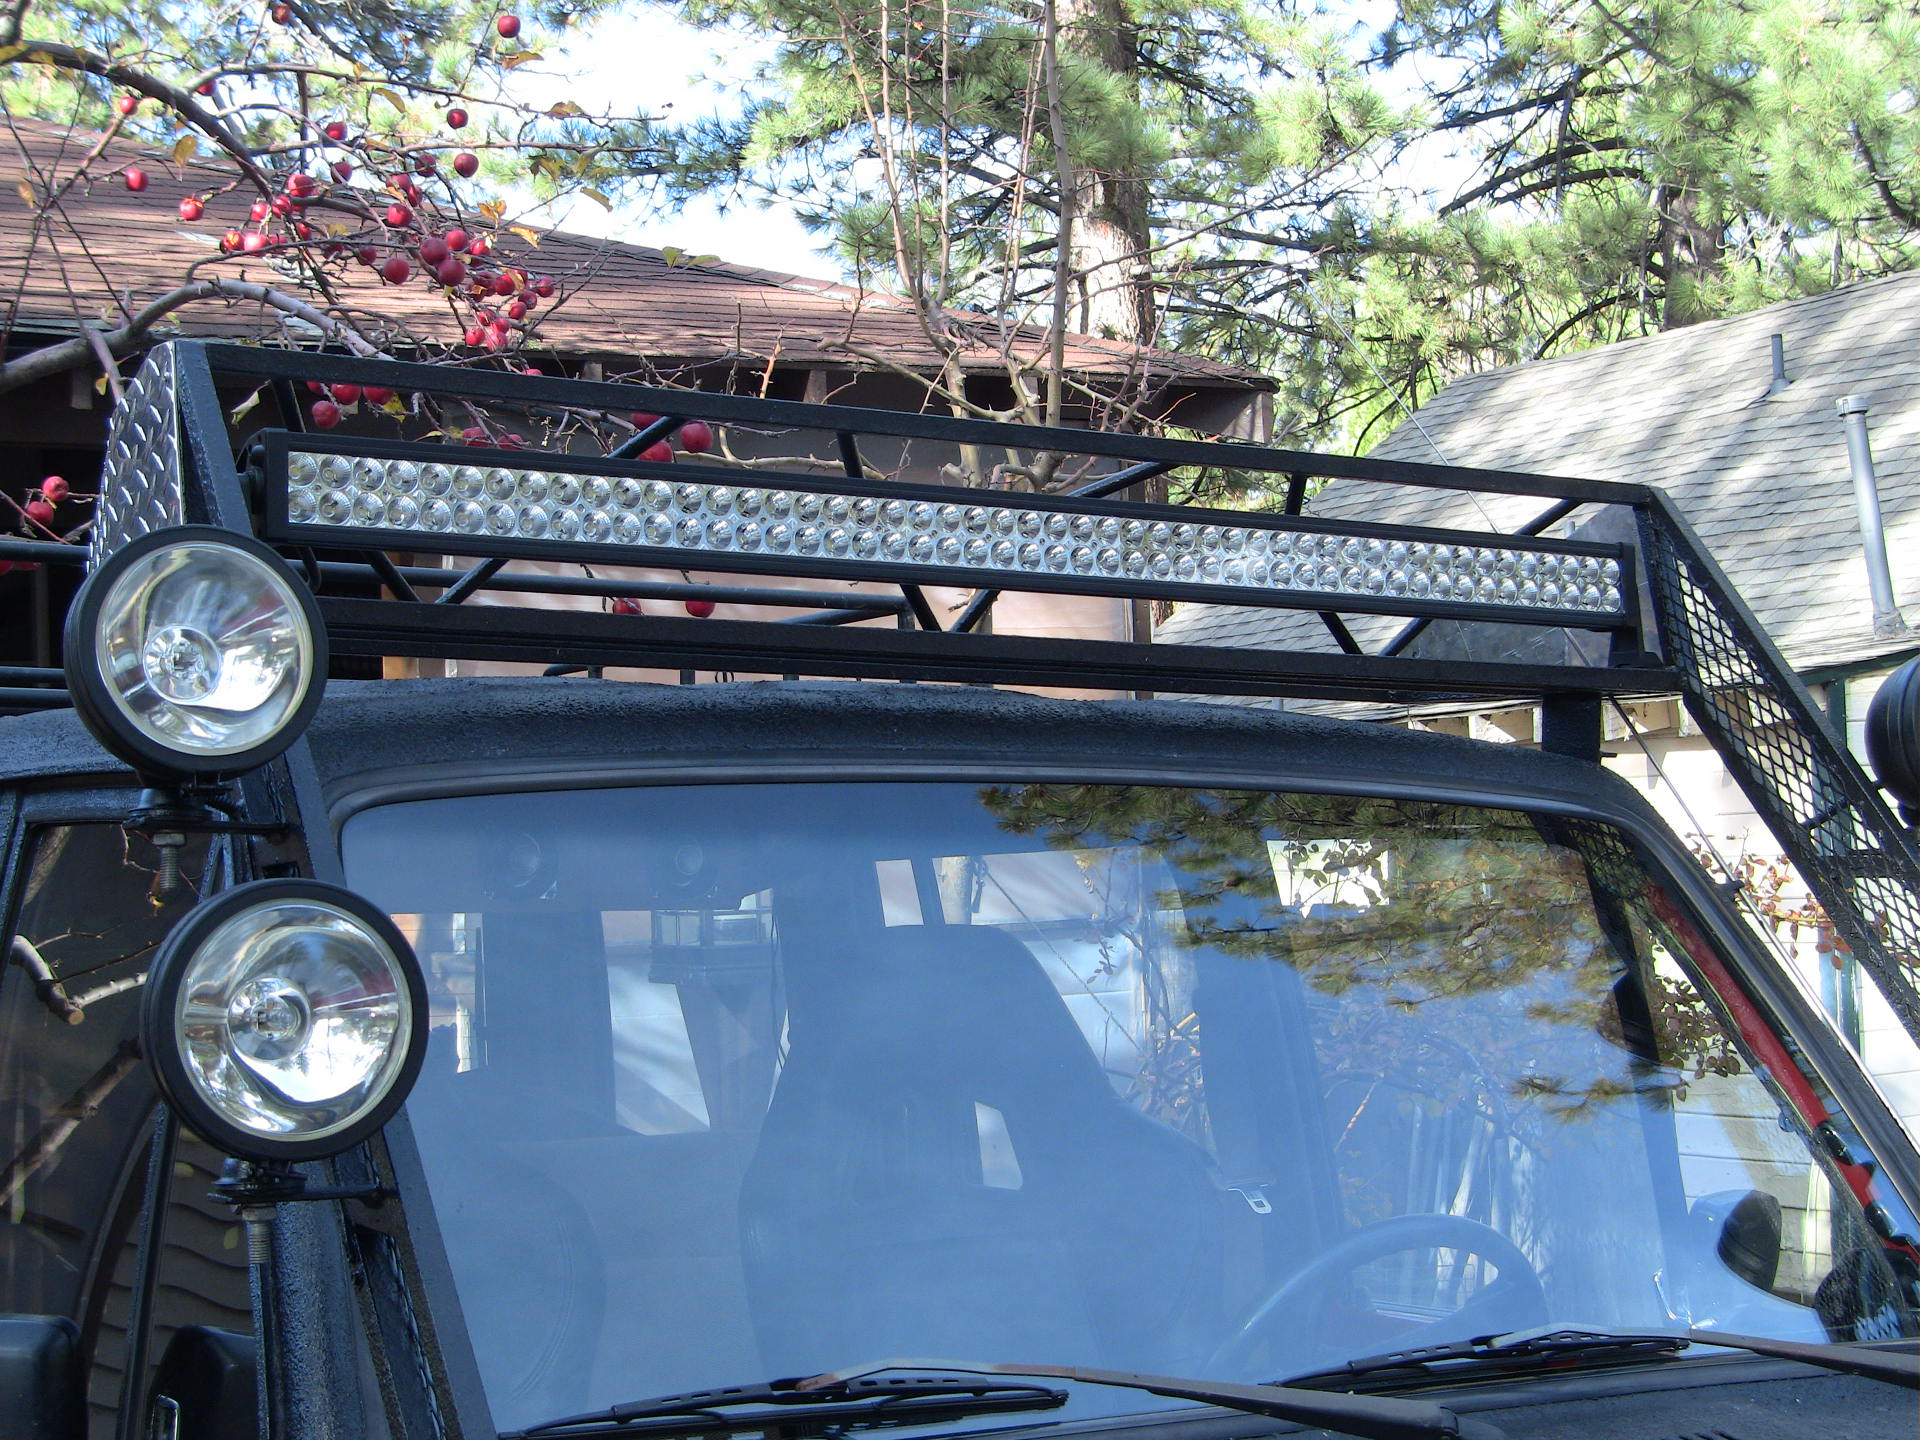 New mods to the trooper and more to come photo 19026959 300w led light bar four 130w spotters aloadofball Images